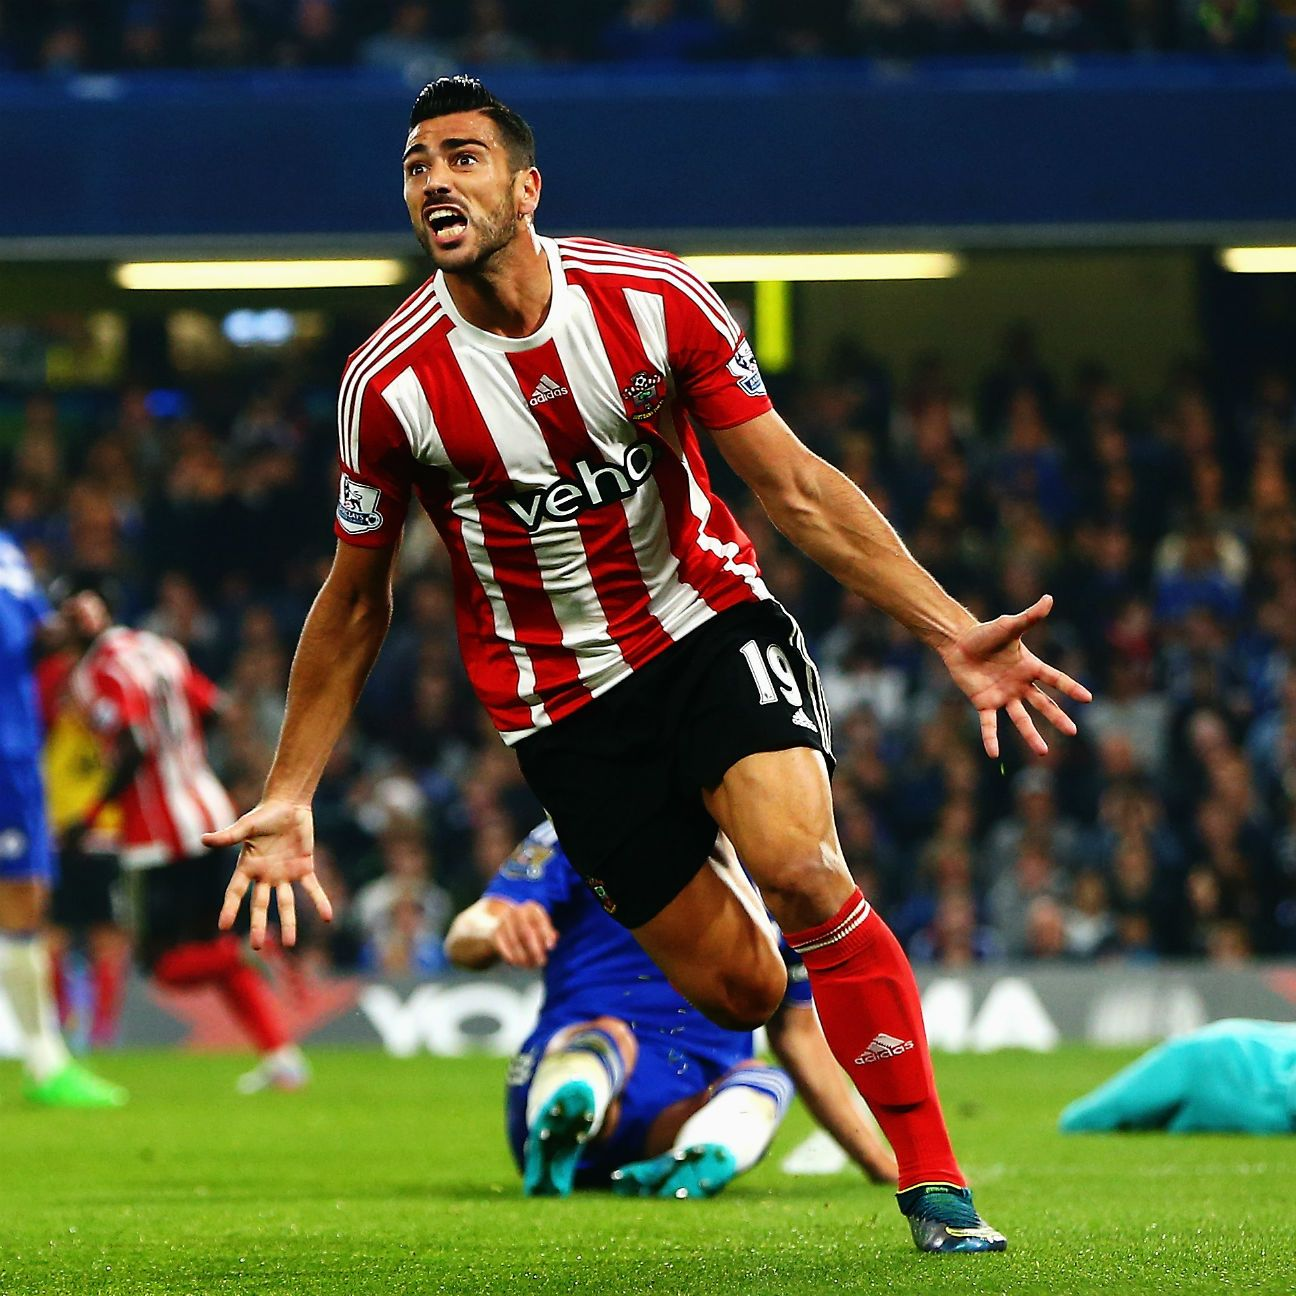 Graziano Pelle has six goals in 16 Premier League matches for Southampton.